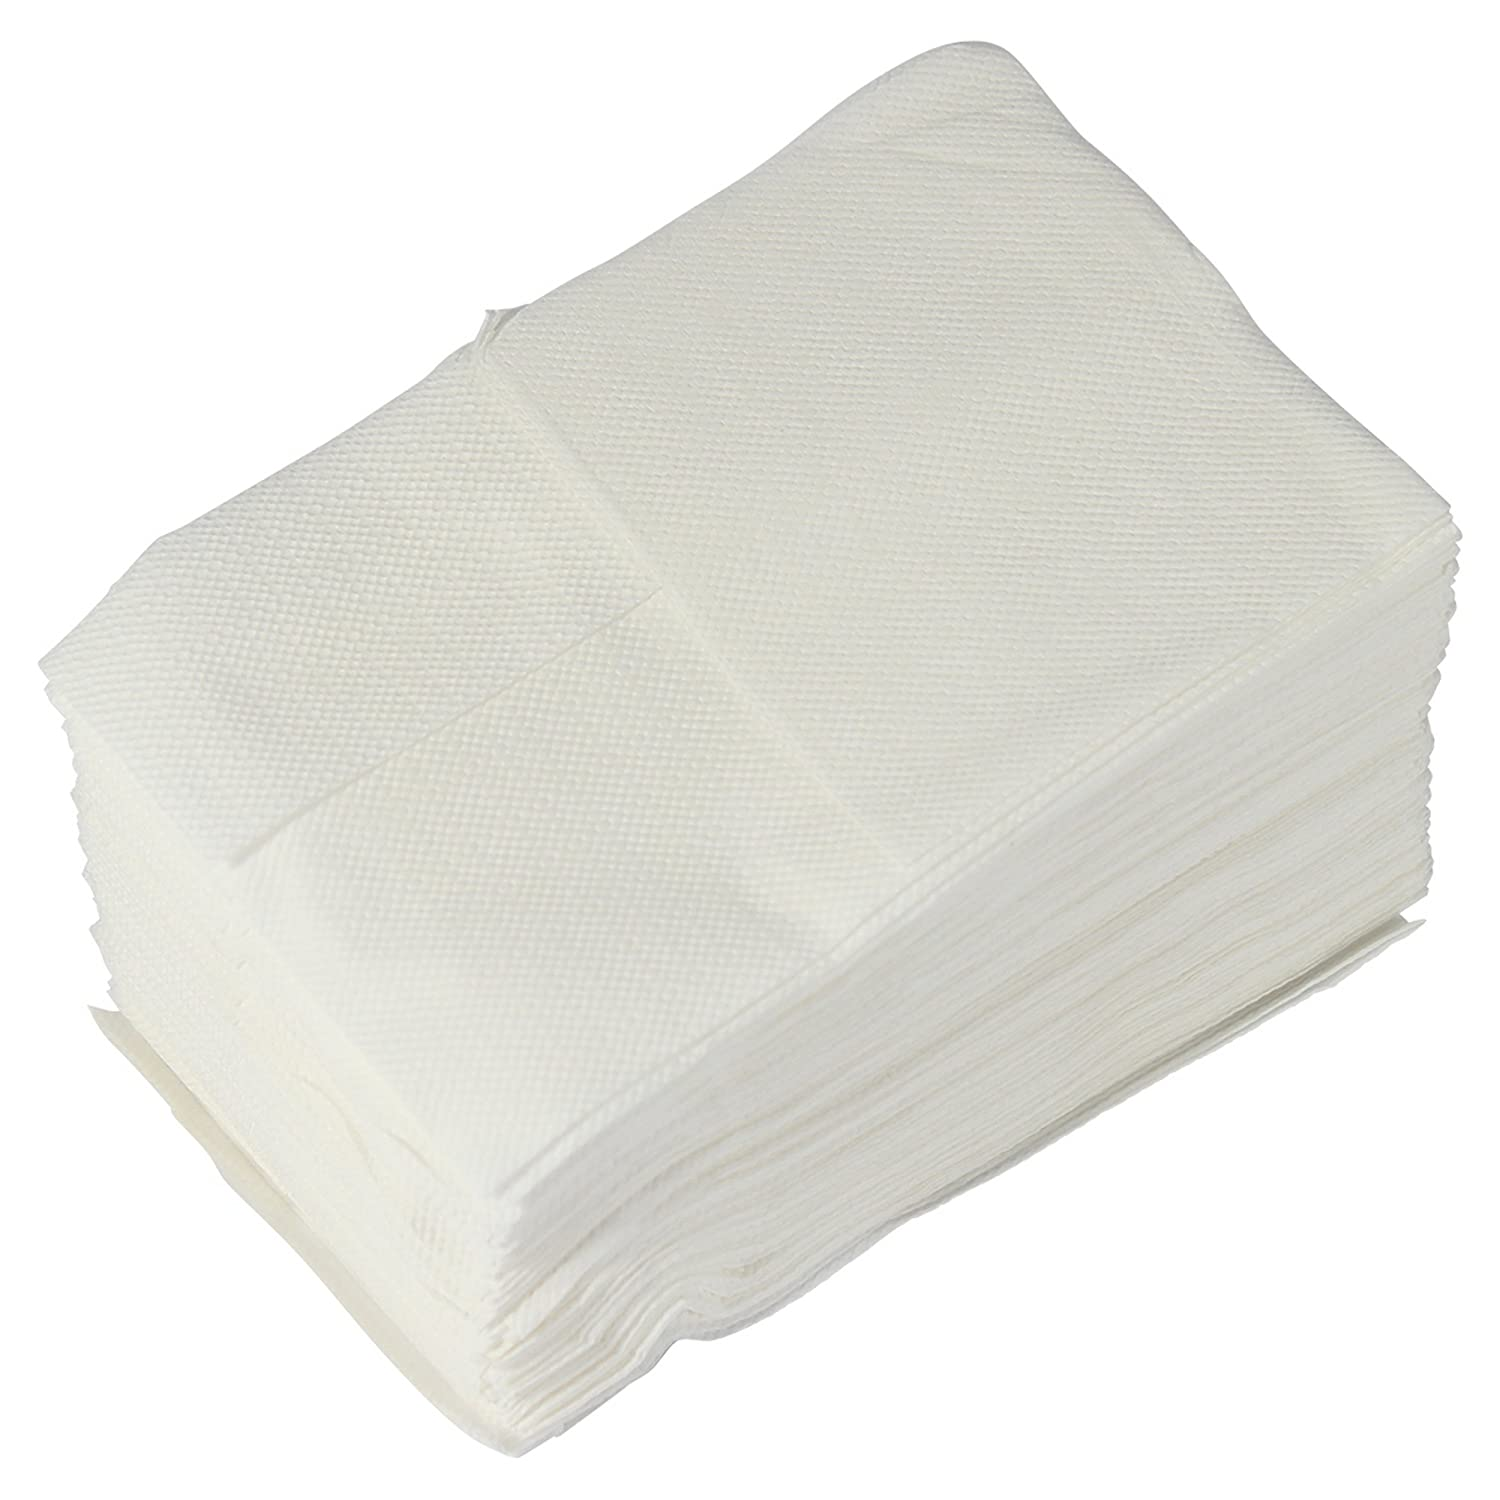 West5Products 1 Packet of 100 20x20cm Paper Napkins for Napkin Dispenser